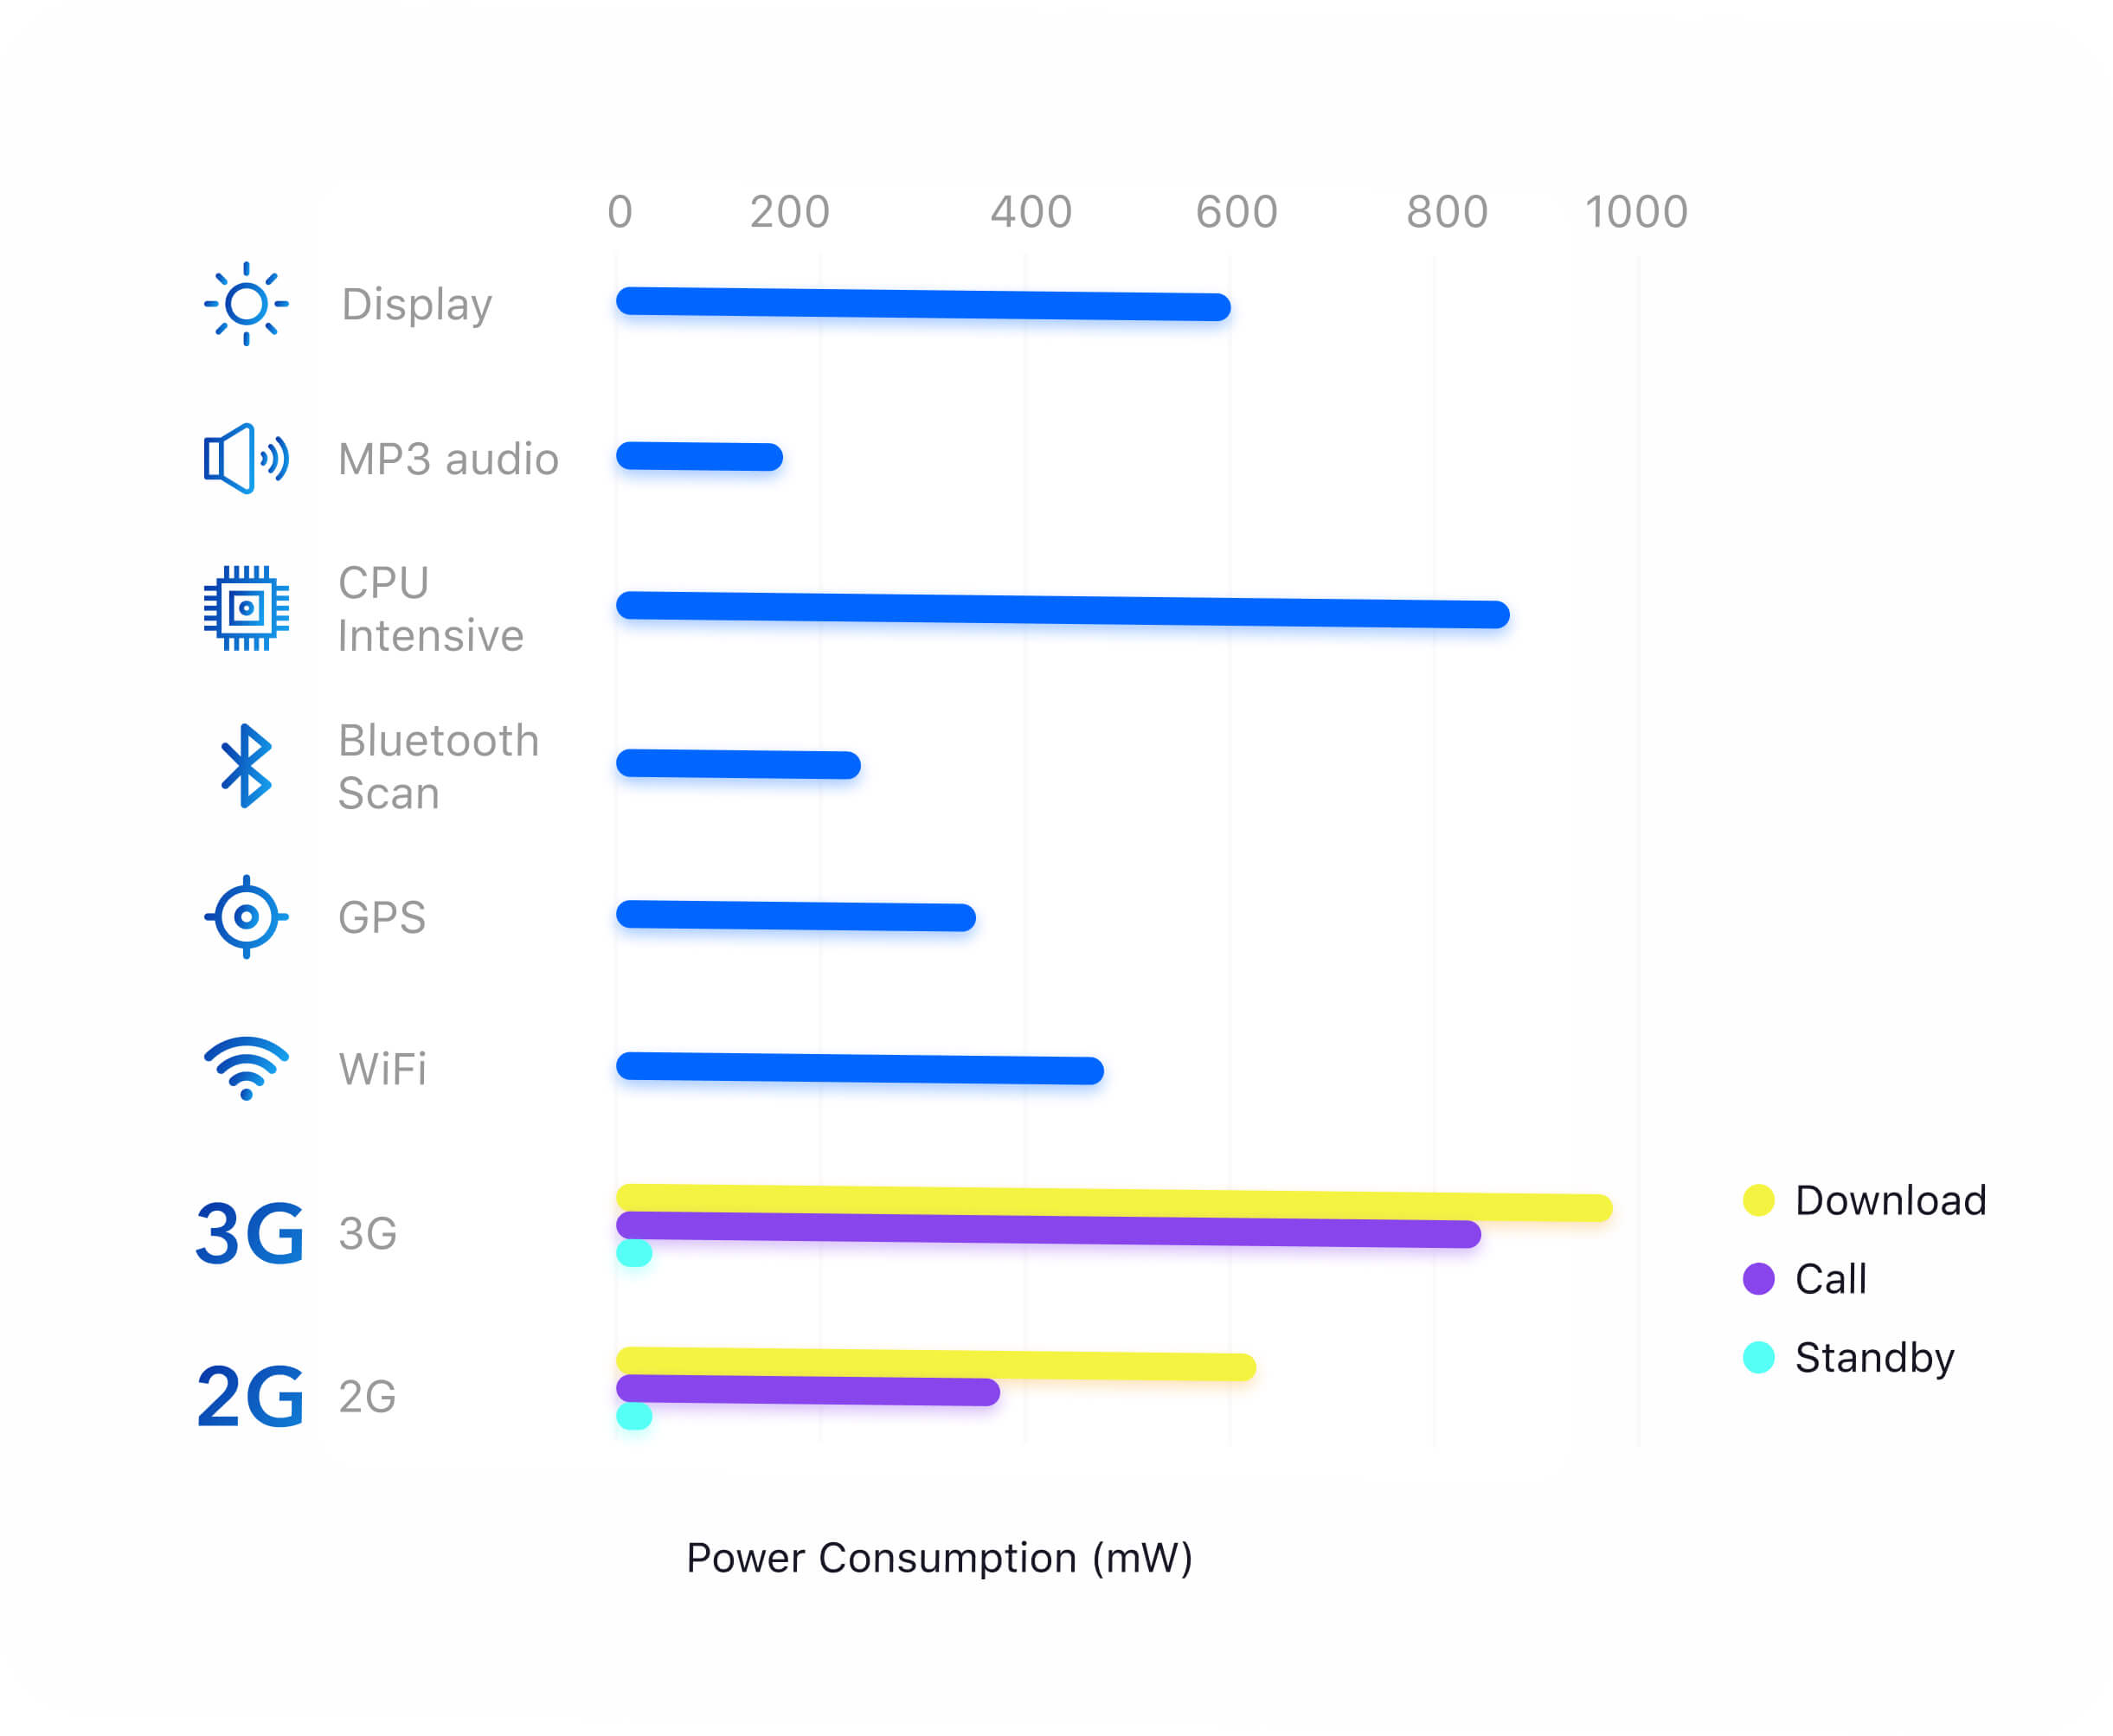 DIGIS features with the highest power consumption